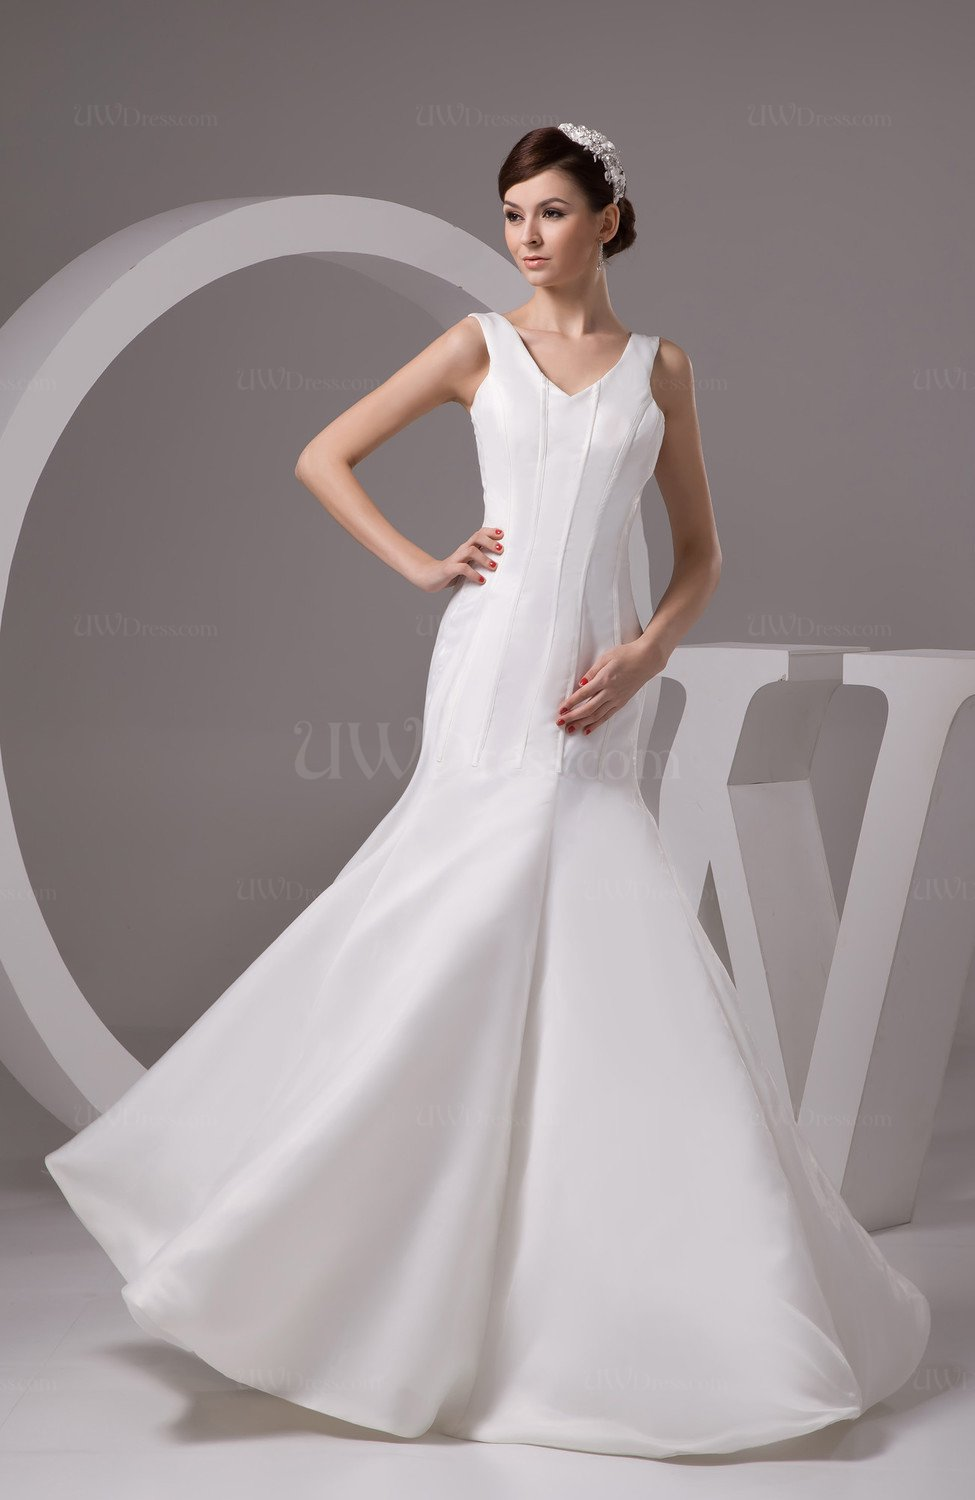 White sexy wedding guest dress long fit n flare trendy for Modern wedding guest dresses